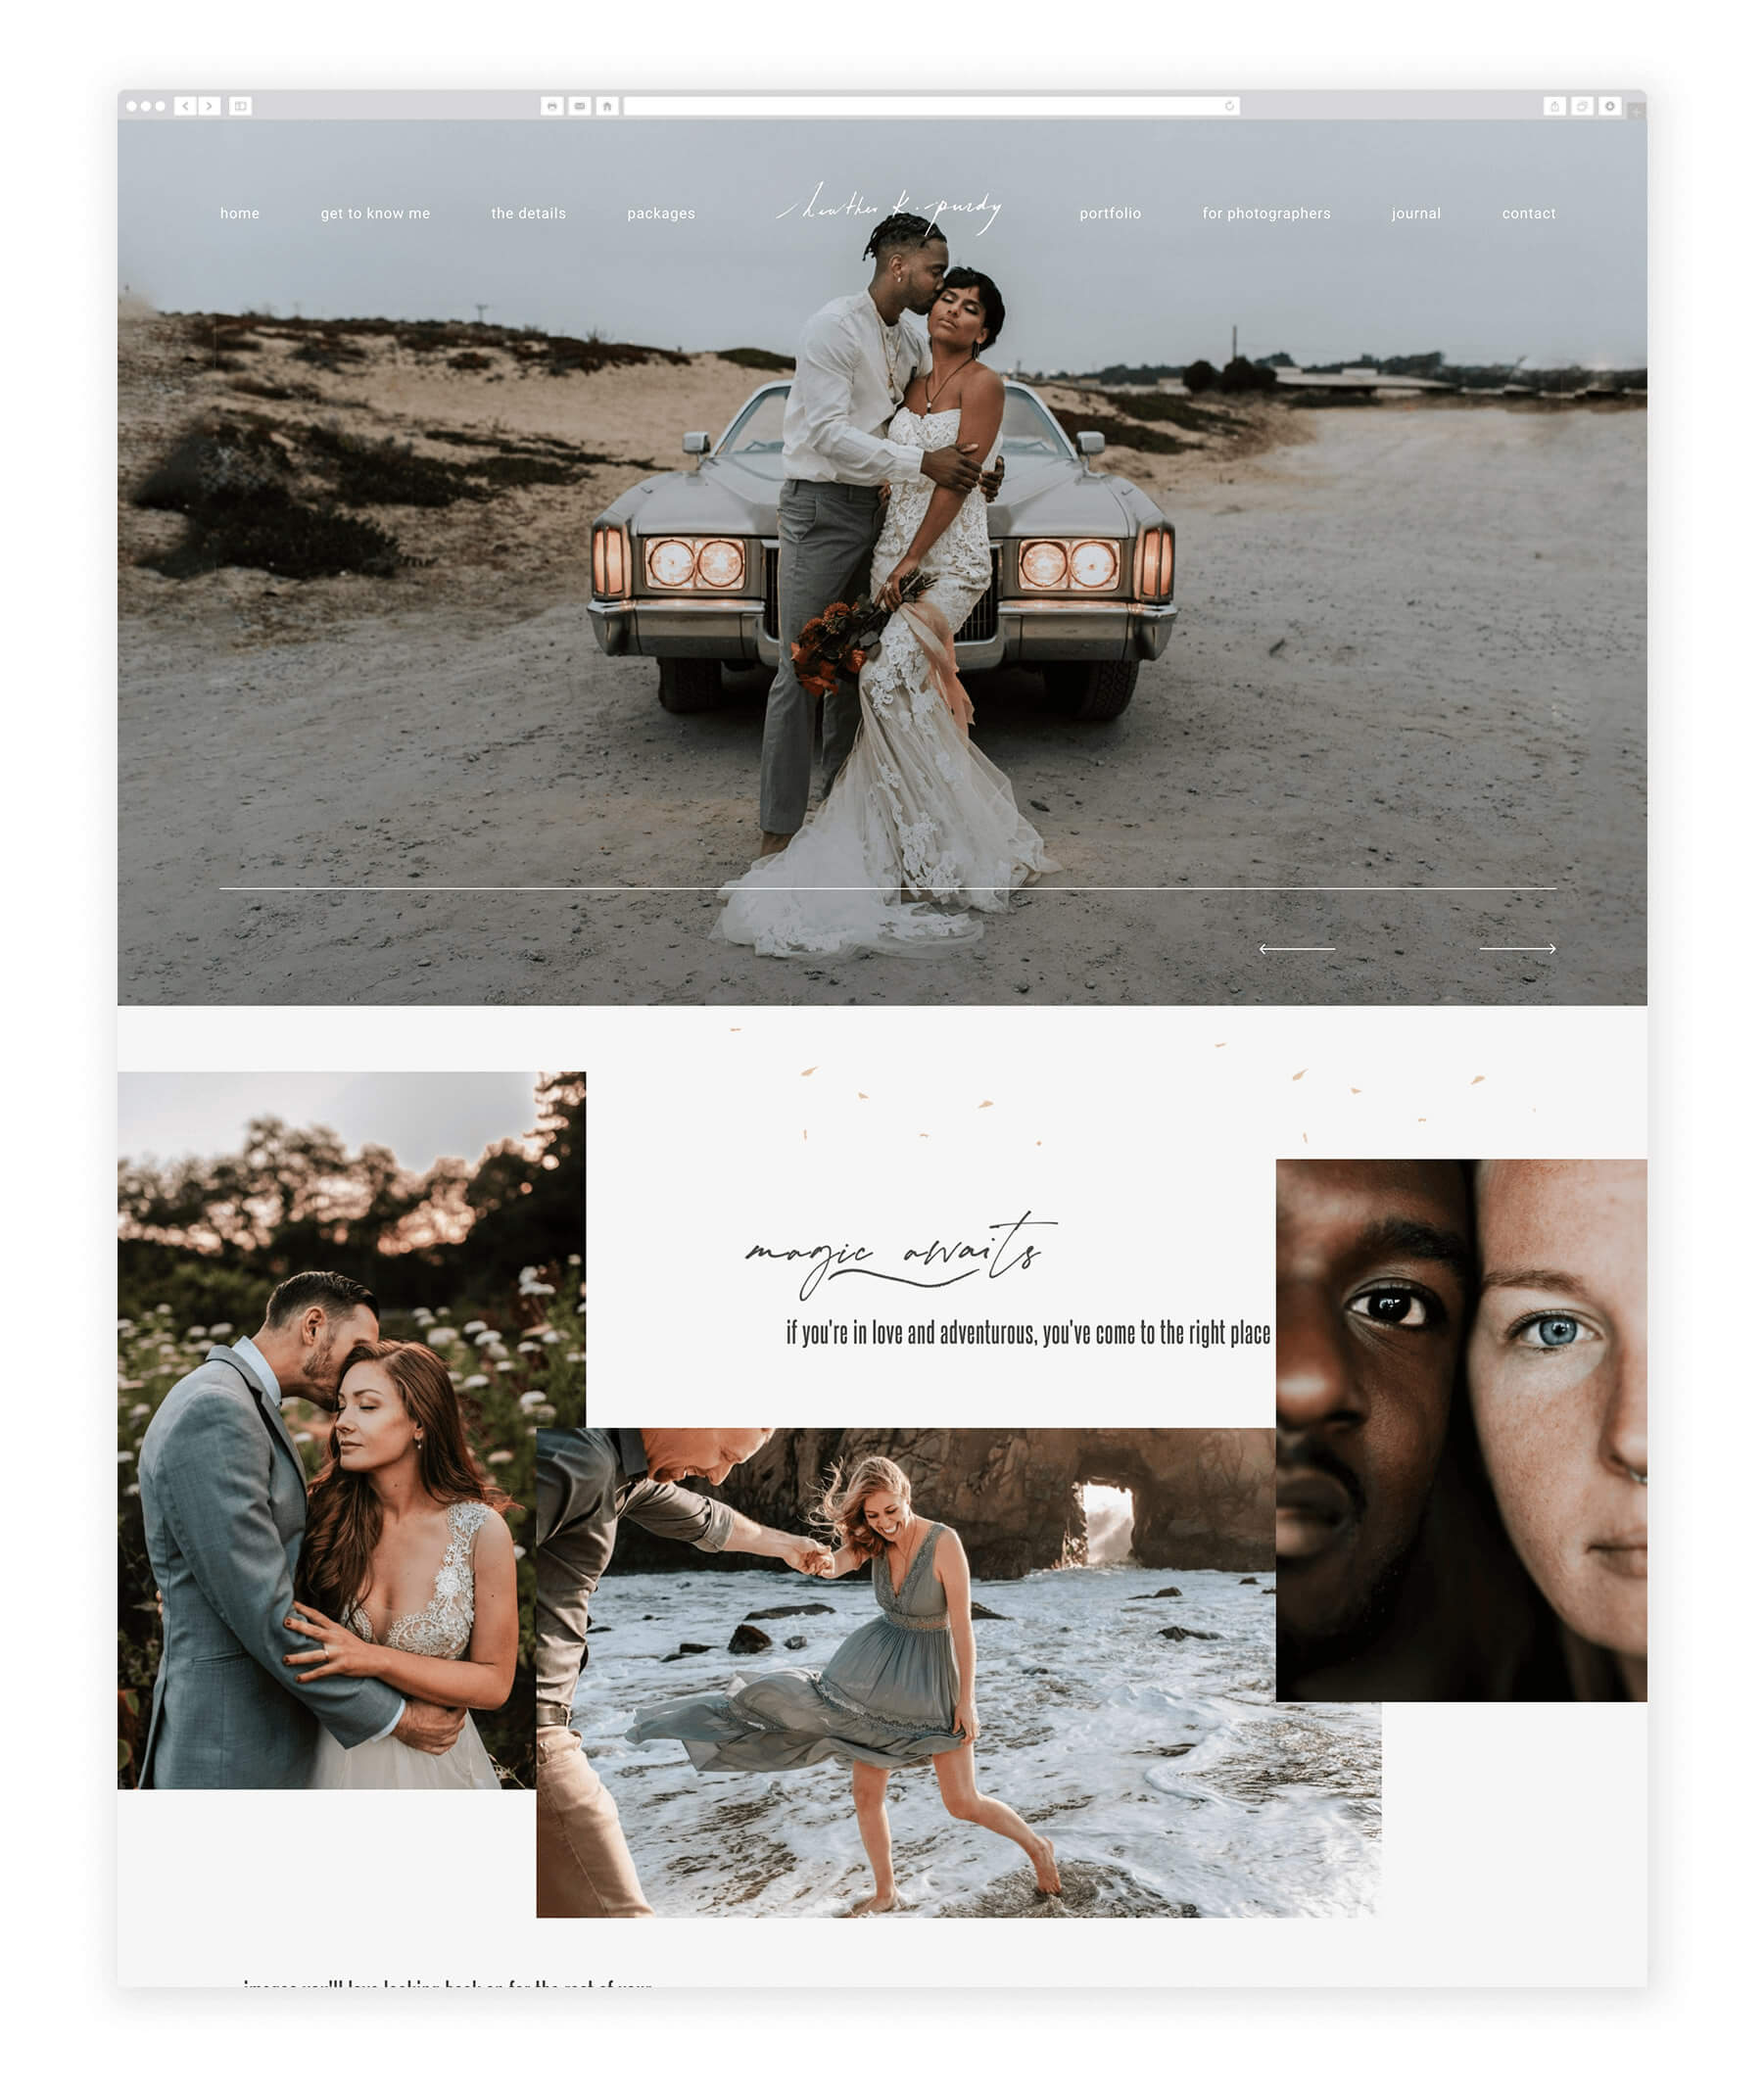 heather-k-purdy-wordpress-website-lyra-theme